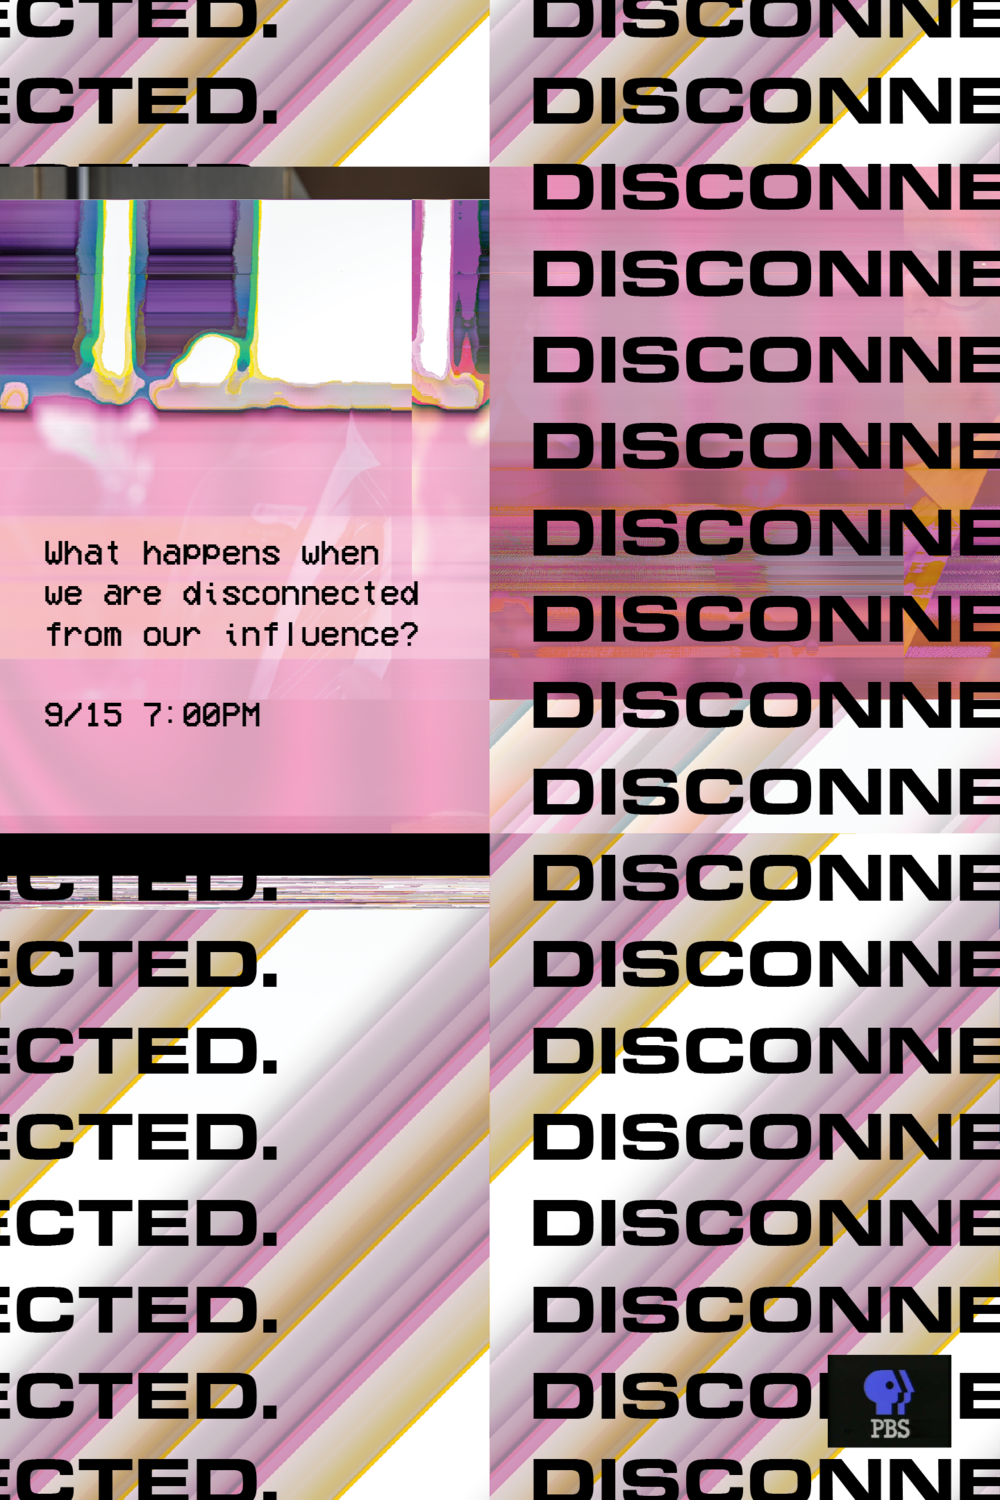 Disconnected Poster Series-01.png